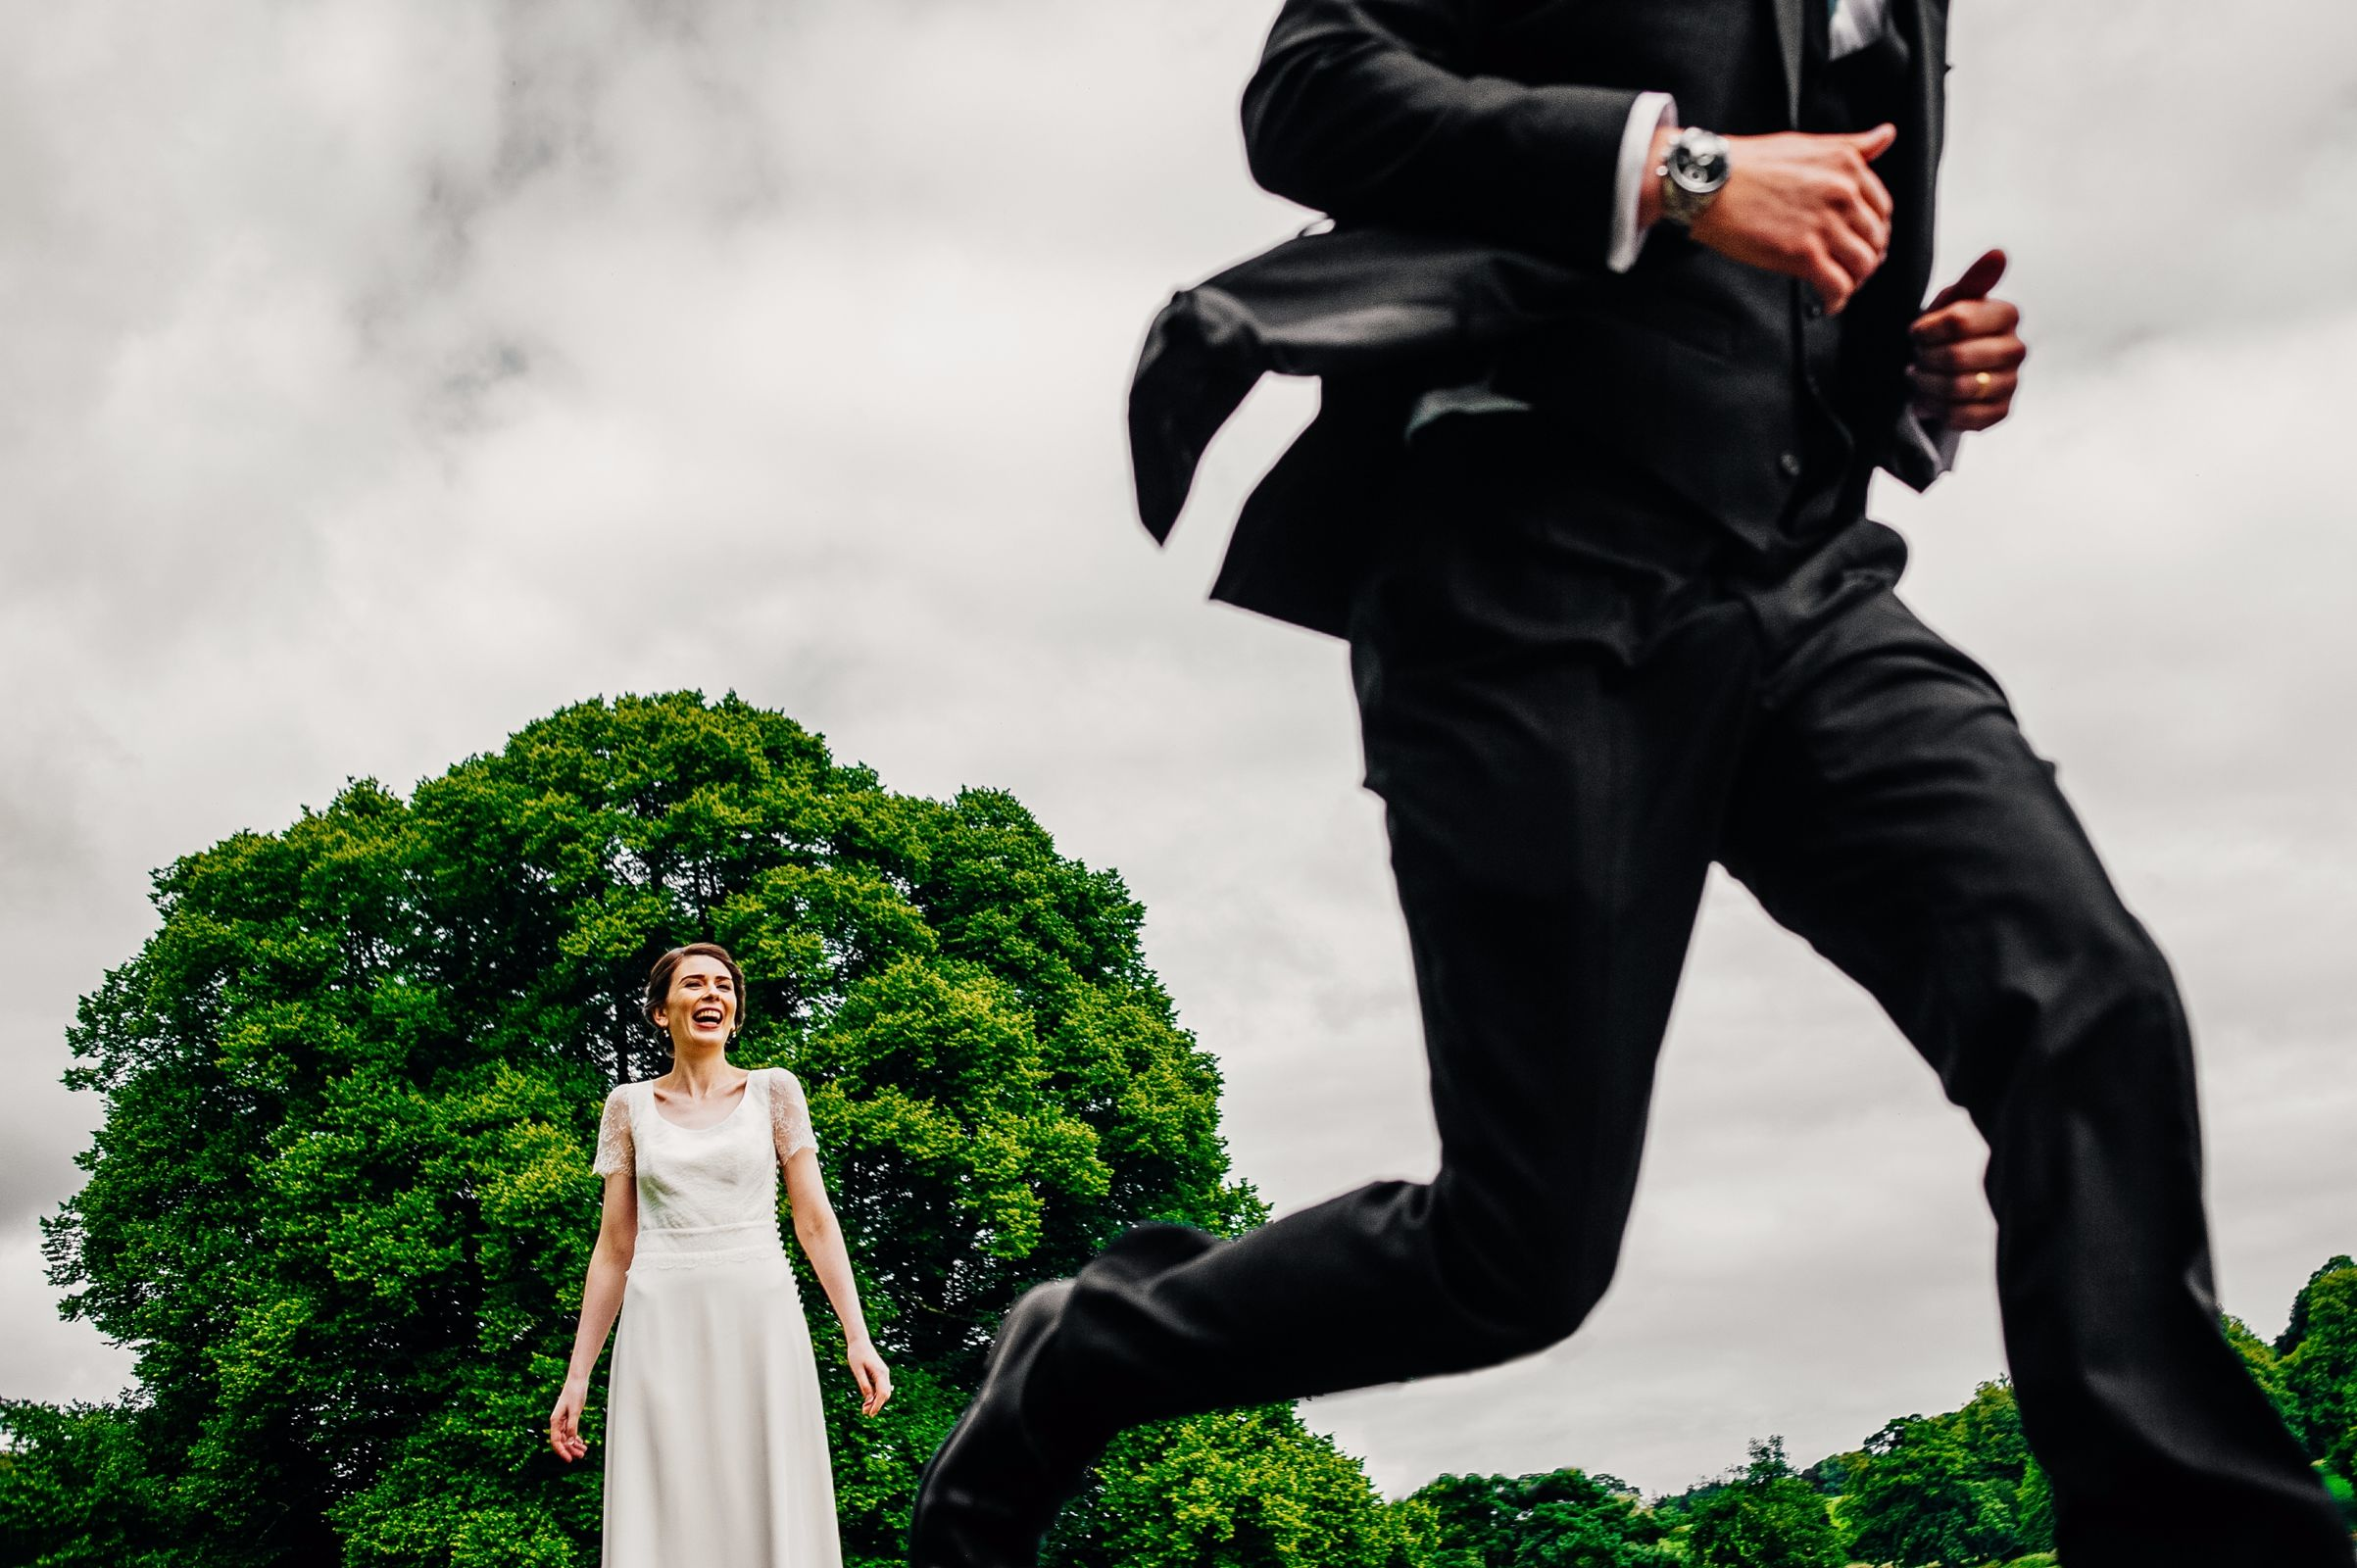 PHILIPPE & EIMEAR - CASTLE LESLIE WEDDING